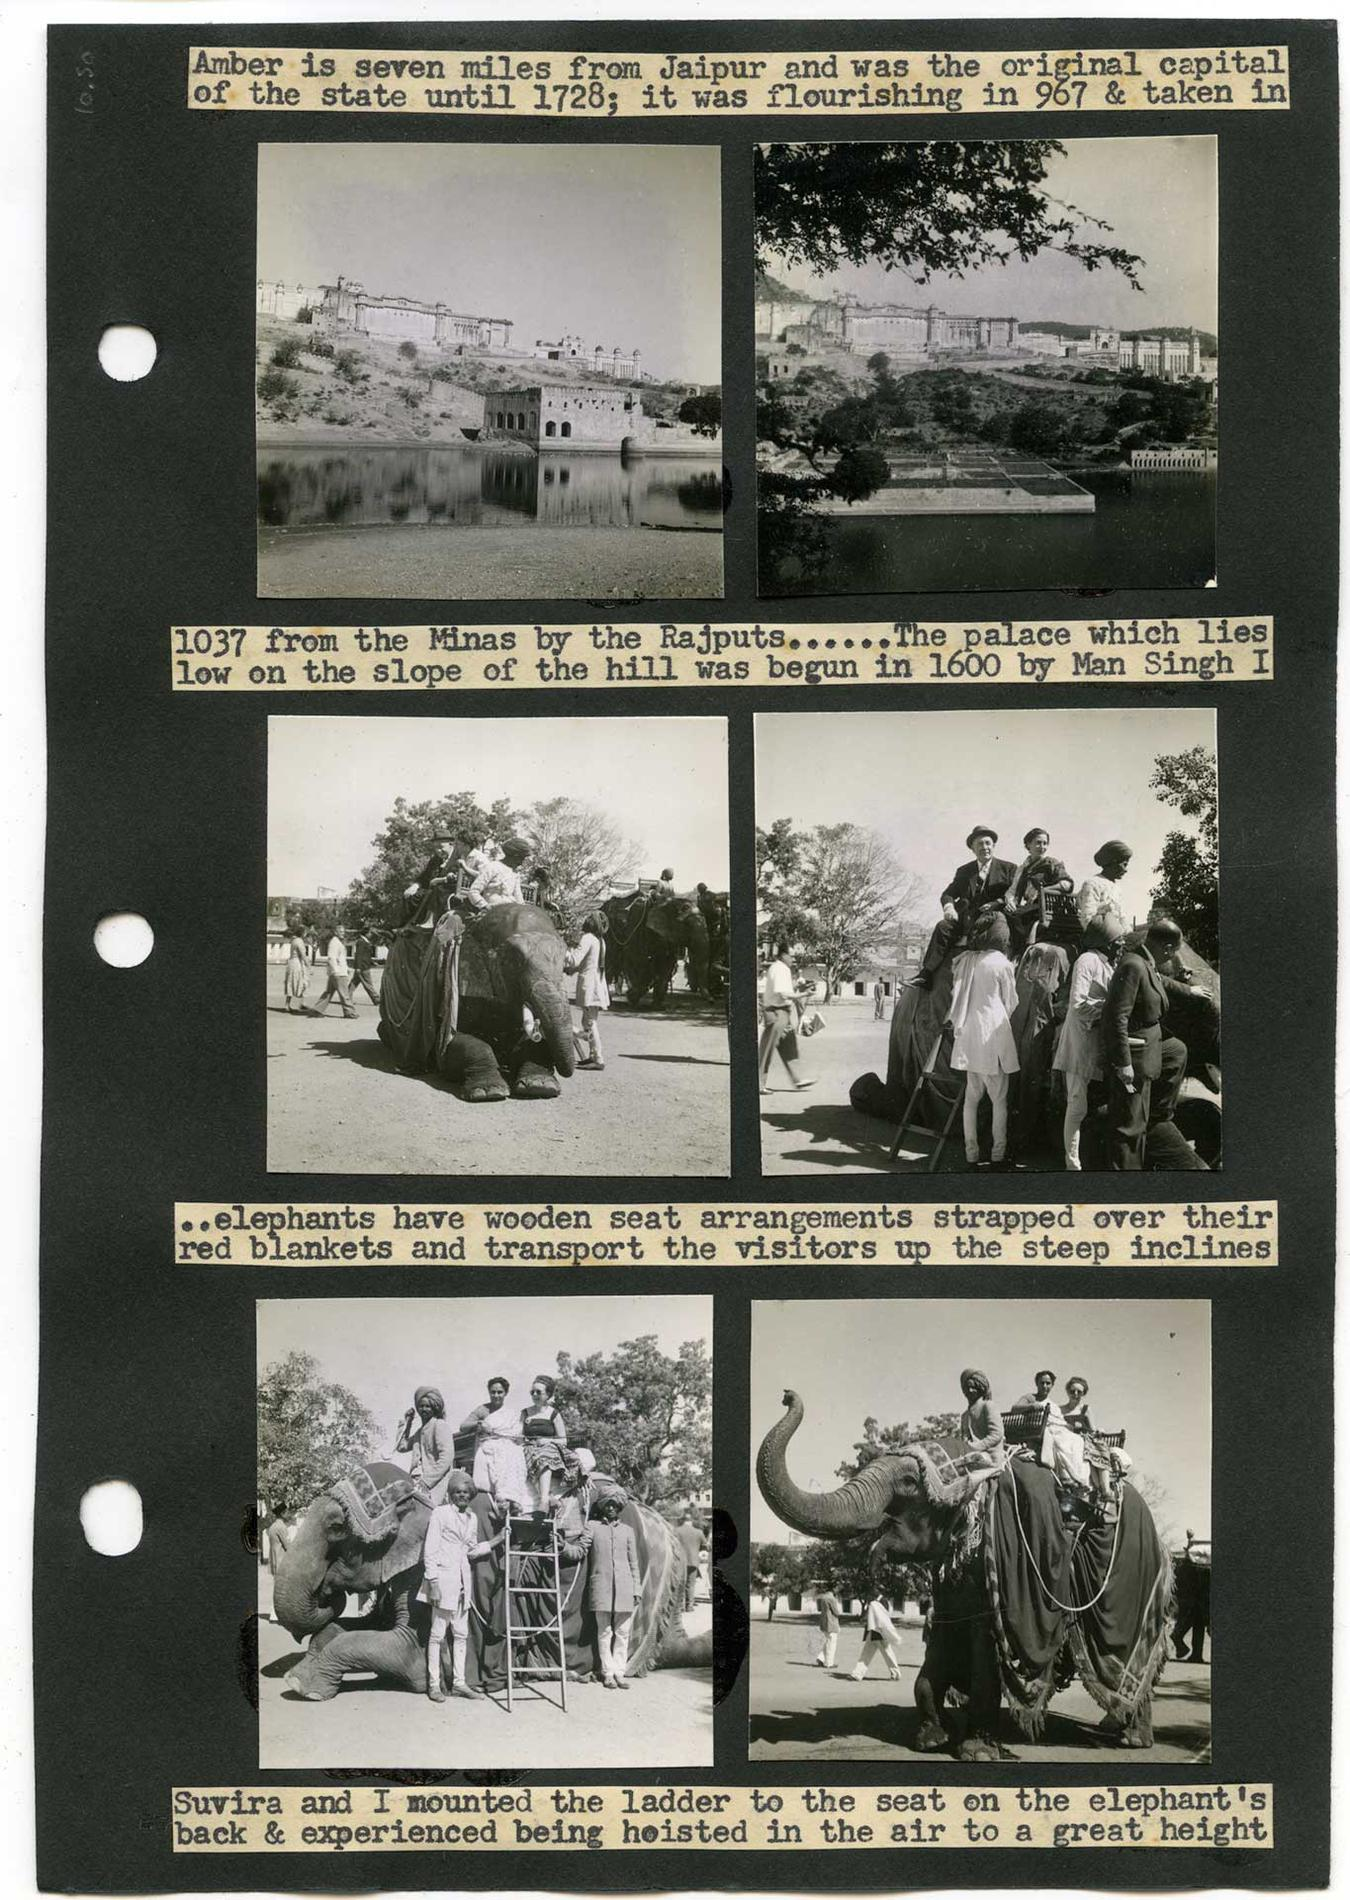 Margaret Corry, album-page showing elephant riding in Jaipur, India. From Margaret Corry's album of travels through Hyderabad, Ajanta, Dehra Dun, Madras, Delhi, Agra, Jaipur, Gaspe, Quebec, and Ontario, 1954, gelatin silver prints and typed captions mounted on paper. Courtesy of Brian Boyle MPA, FPPO photo, 2017© ROM